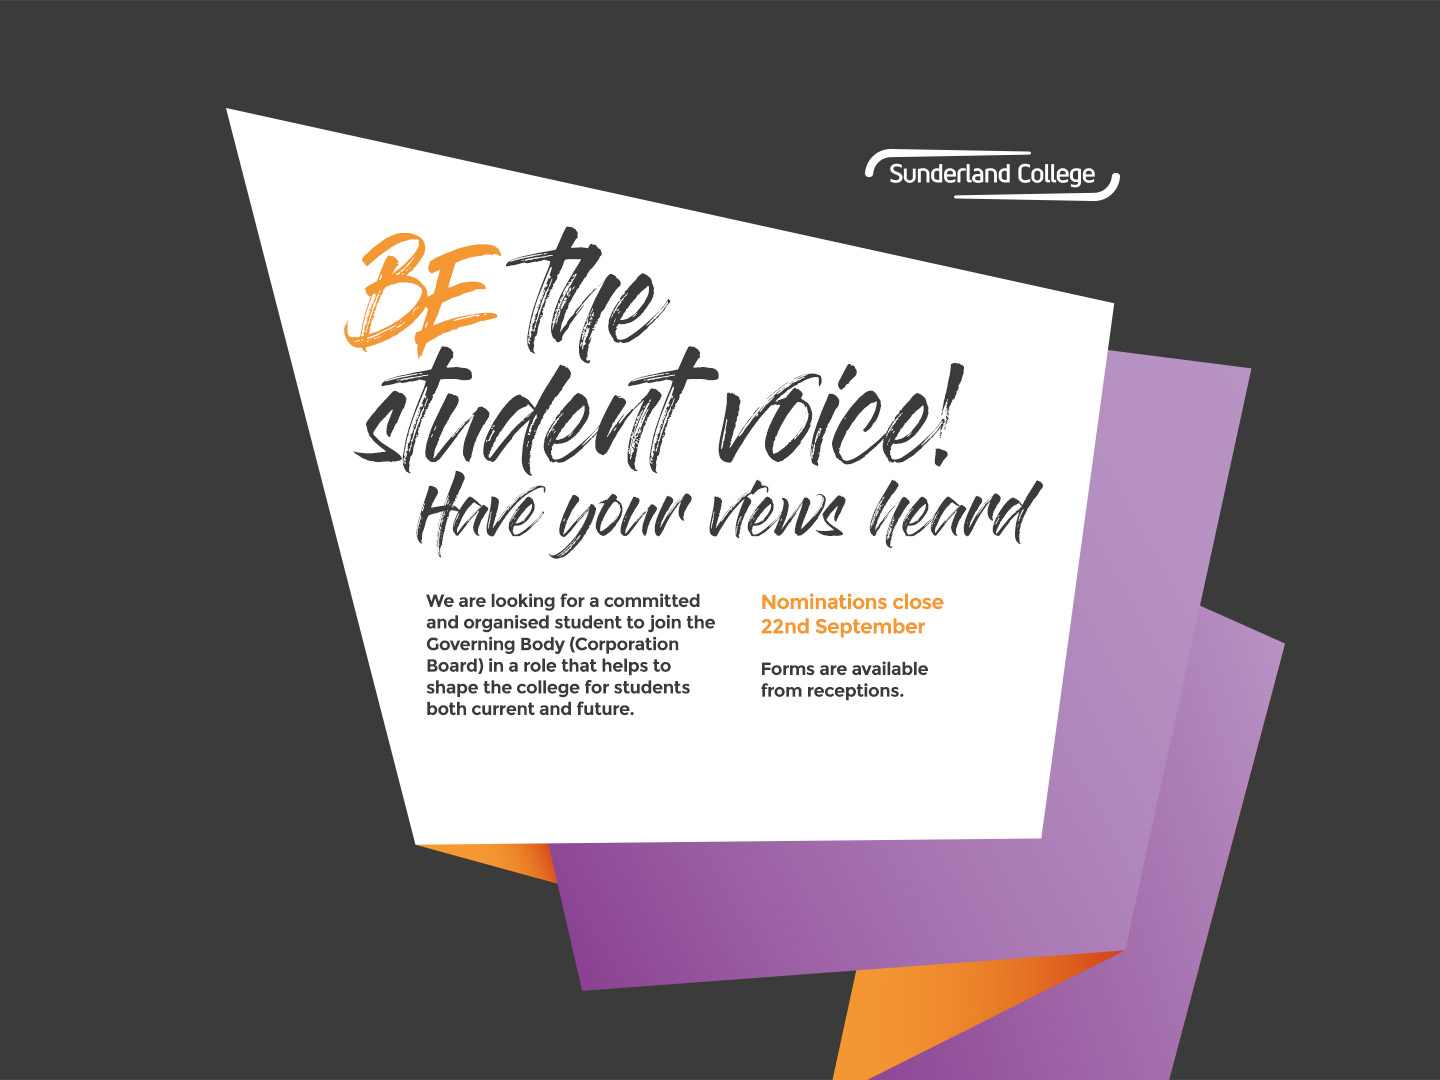 StudentVoice_Advert.jpg